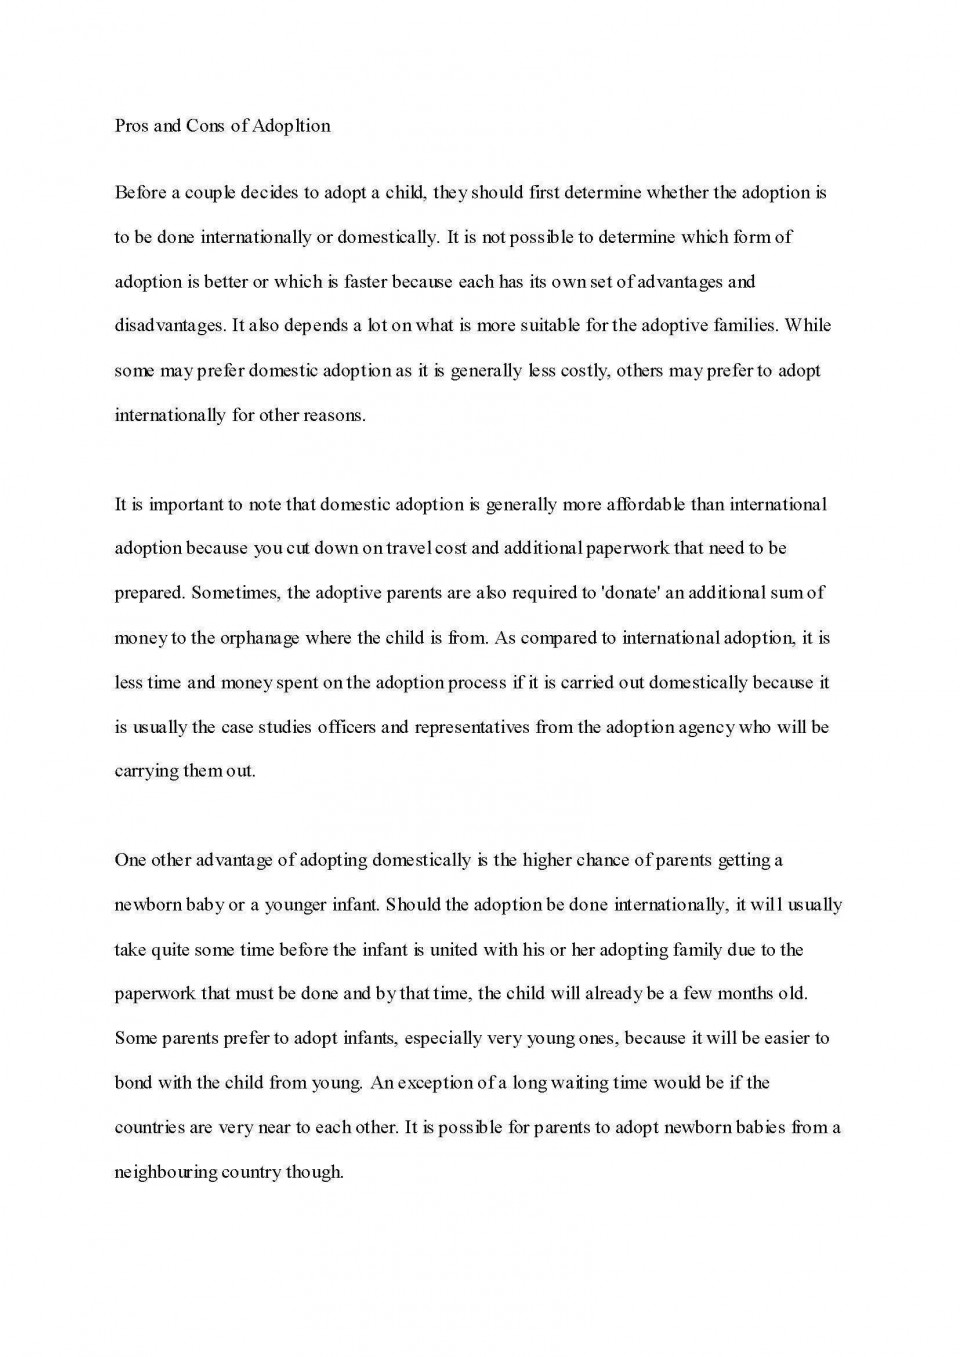 004 Amazing Compare And Contrast Essay Example College High Def  For Topic Free Comparison960